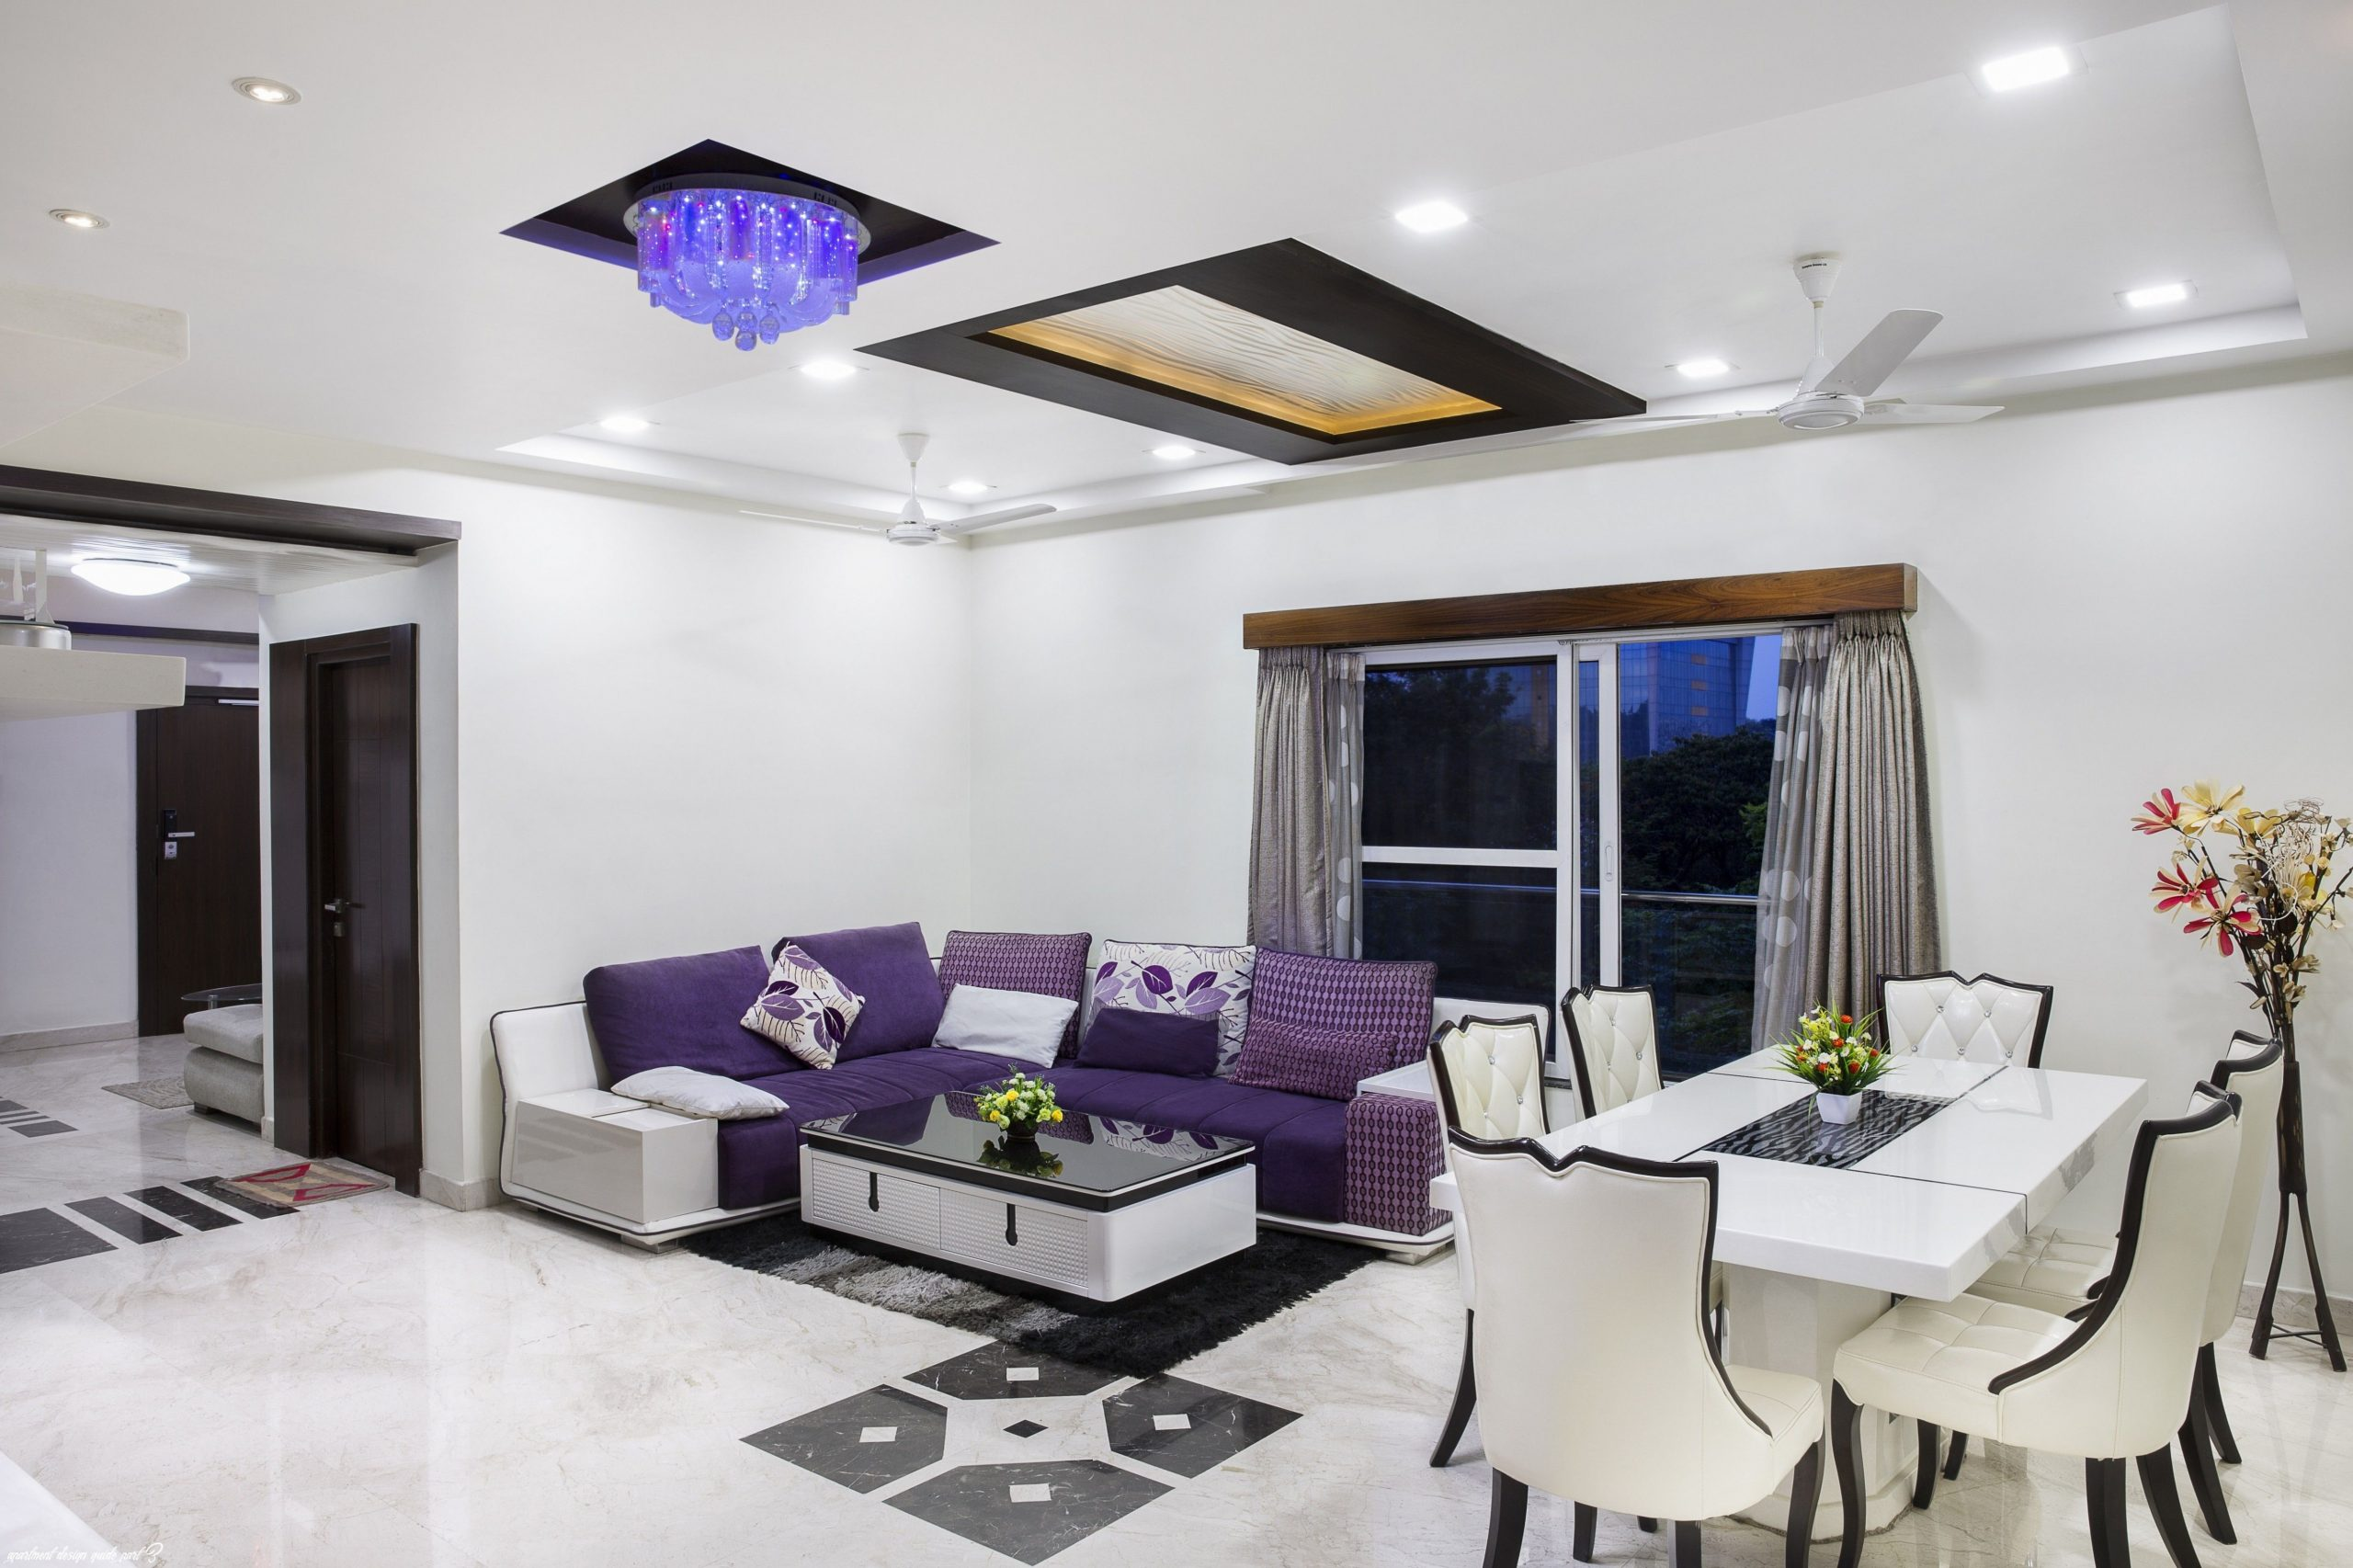 10 Apartment Design Guide Part 10 in 10  Small living room  - Apartment Design Guide Part 3